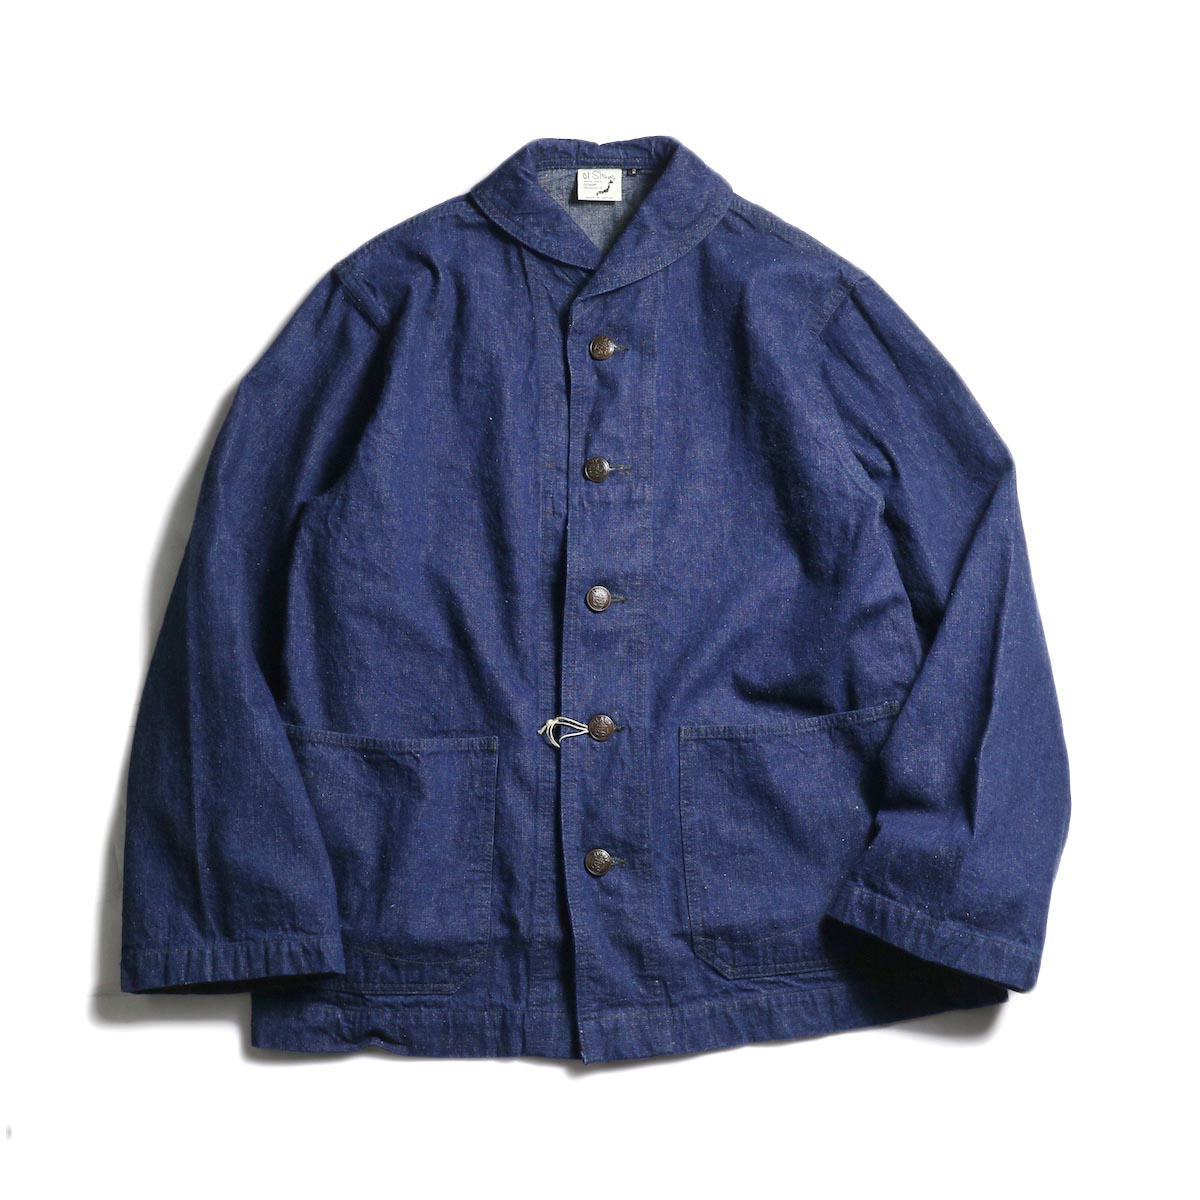 orSlow / US NAVY SHAWL COLLAR JACKET (One Wash)正面